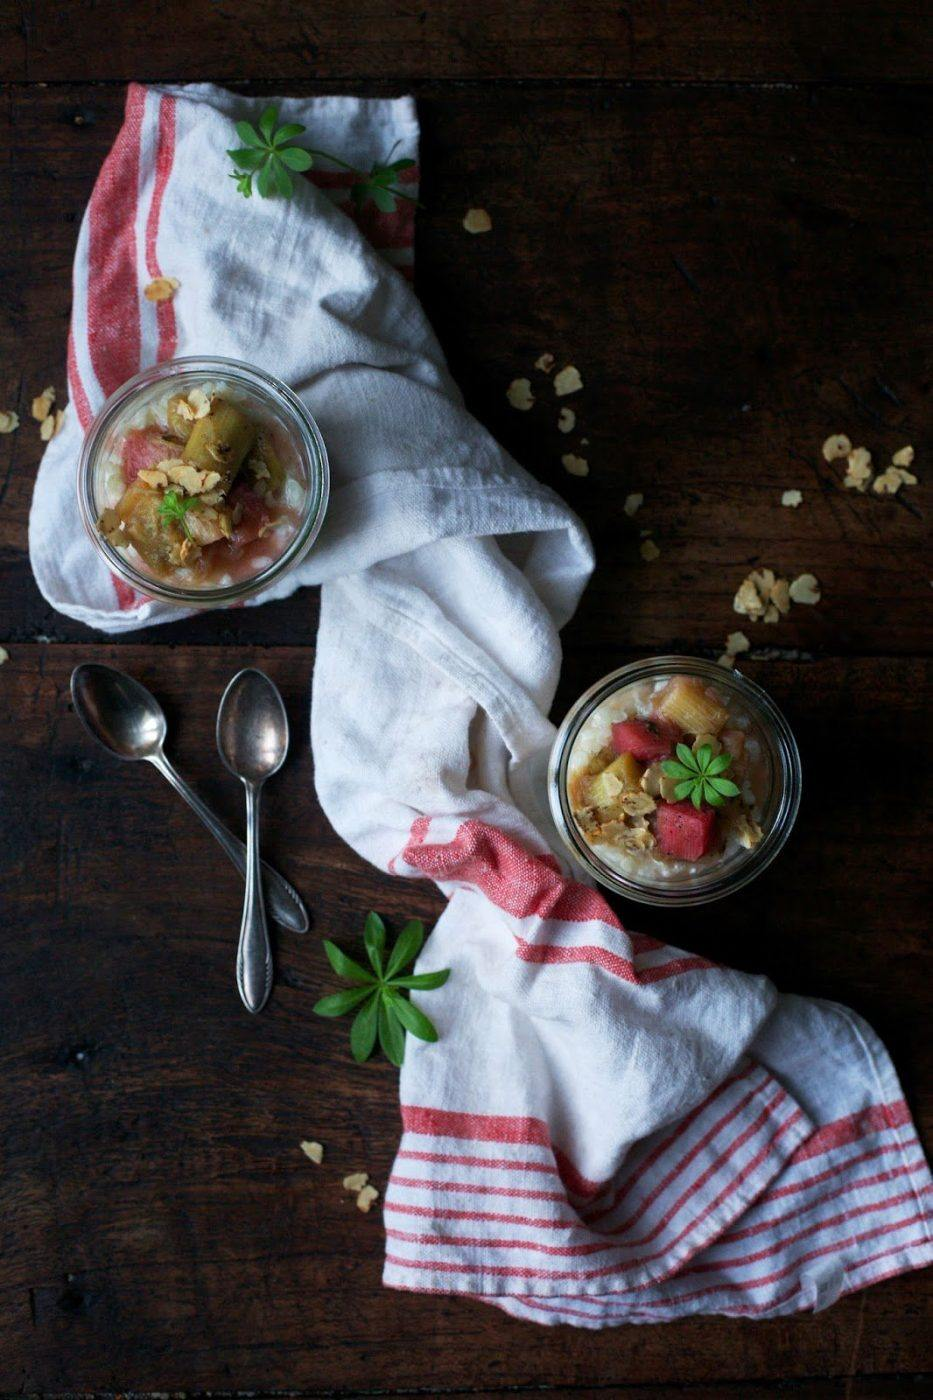 Image for Goat-Rice Pudding with Rhubarb Compote, Earth Almond Flakes and a touch of Sweet Woodruff